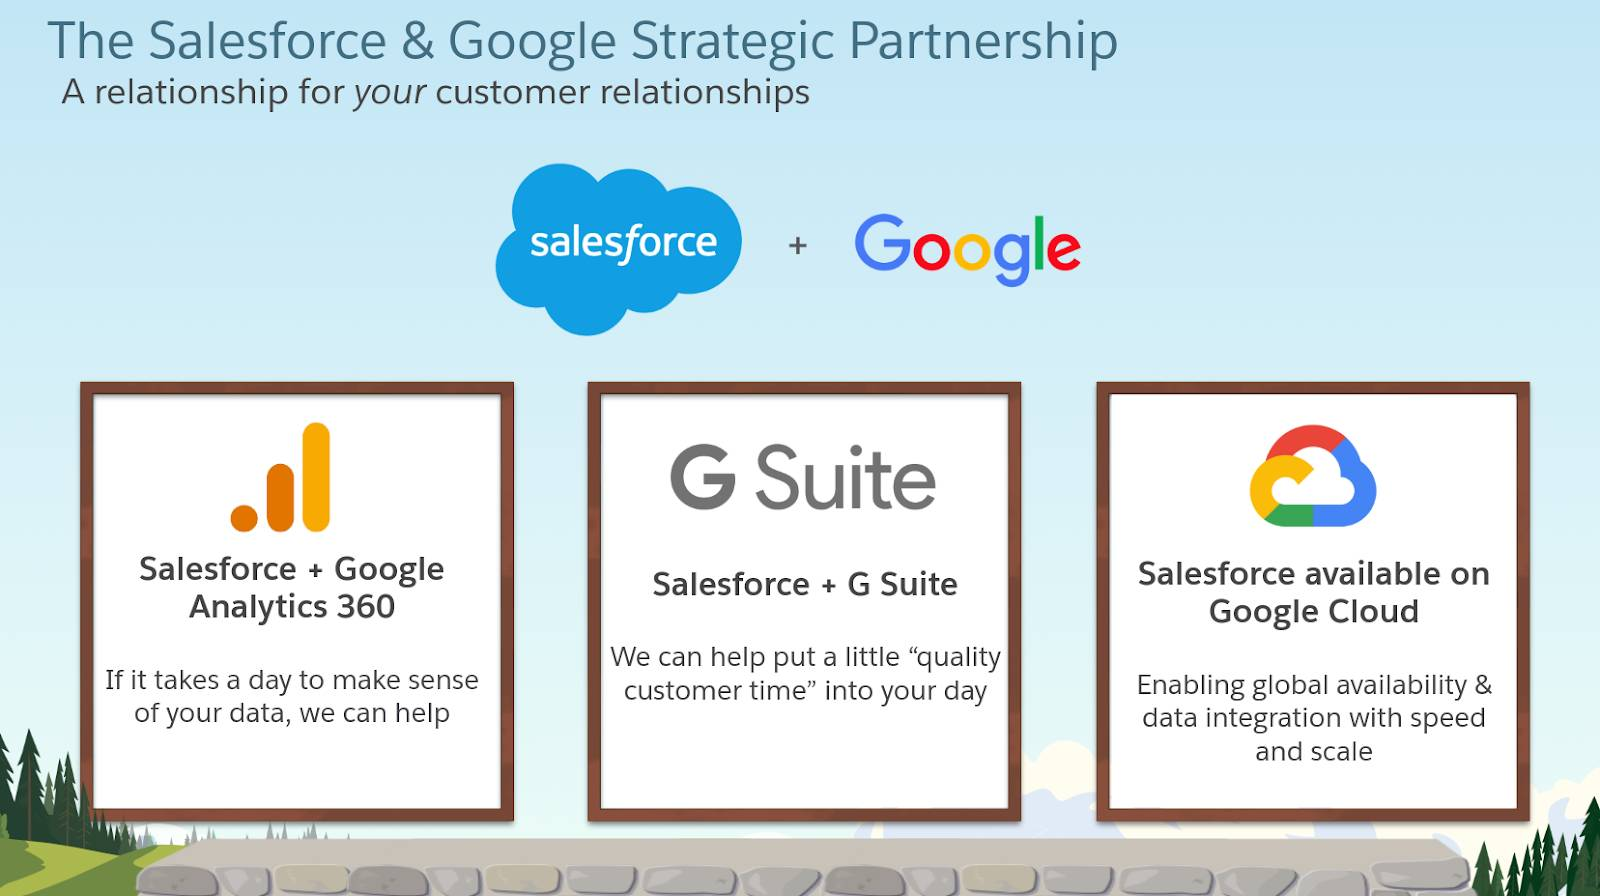 A parceria estratégica entre Salesforce e Google está focada na integração com a Plataforma de Marketing do Google, o G Suite, a disponibilidade no Google Cloud e em permitir que você conheça melhor seu cliente.